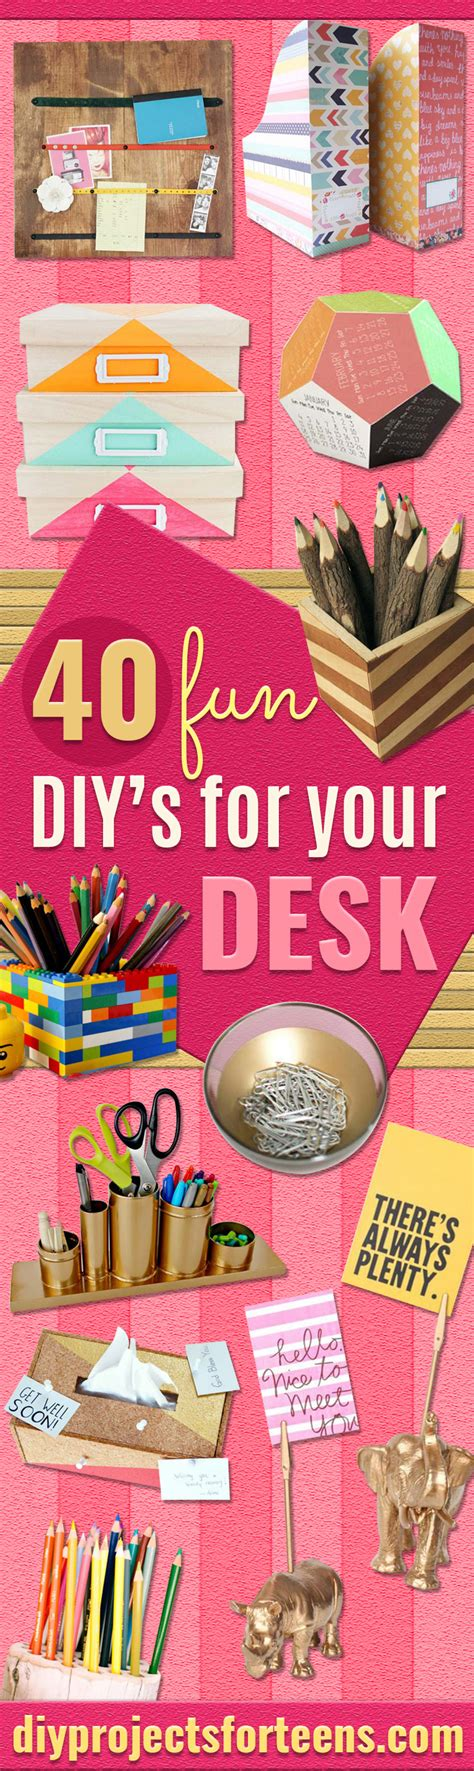 website for diy projects 40 diys for your desk